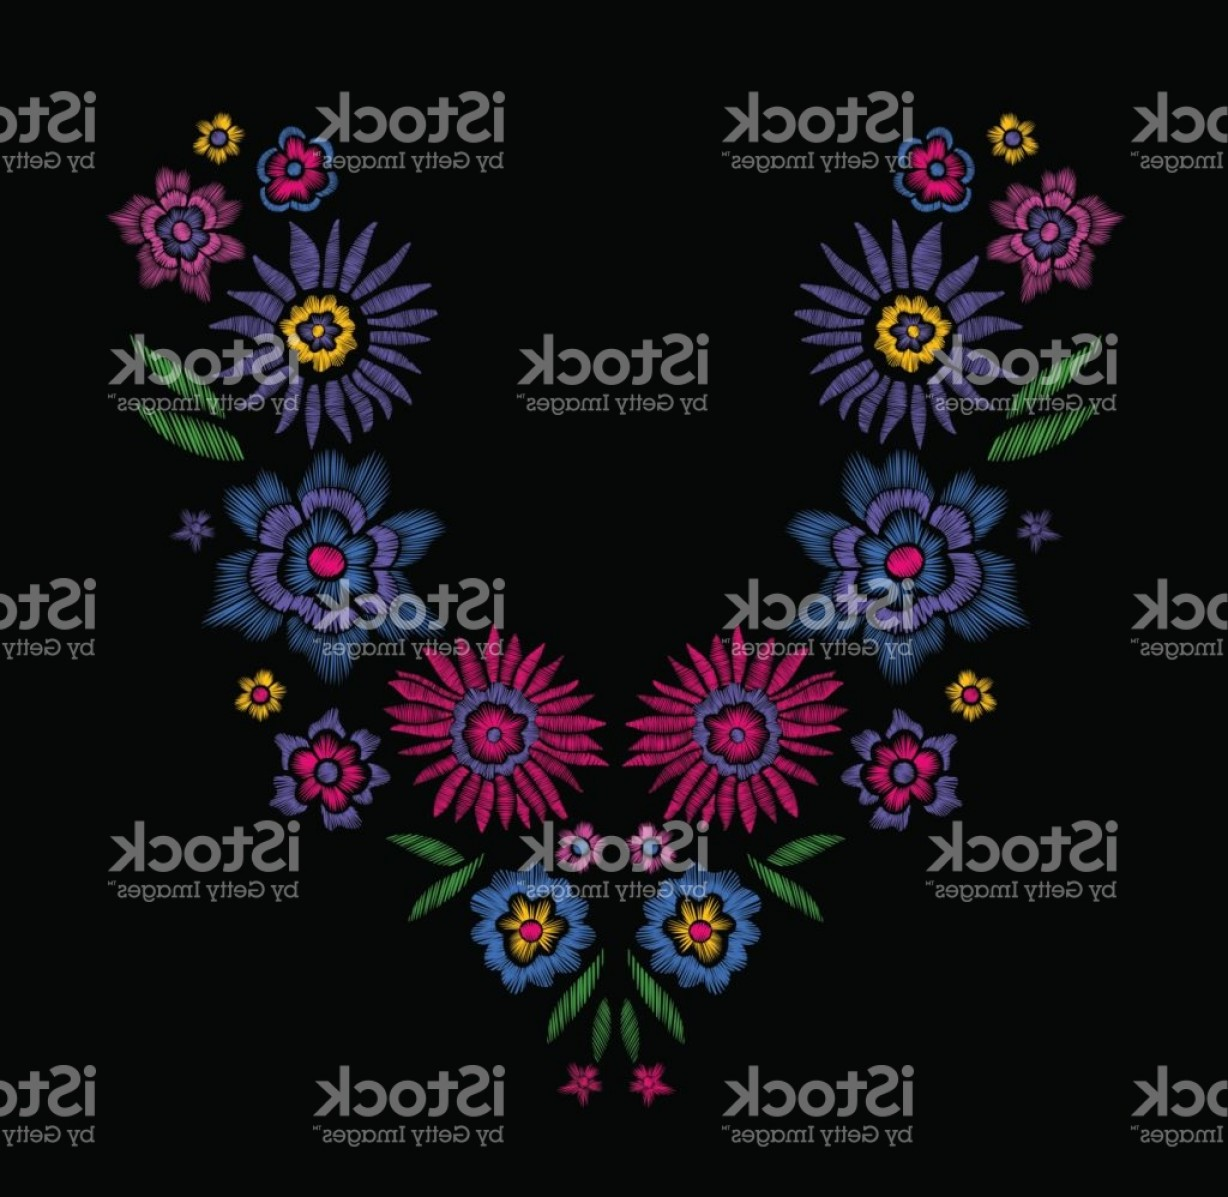 Open Source Vector Graphic Flower: Floral Pattern Neck Line Designs Vector Illustration Hand Drawn Fantasy Flowers Gm